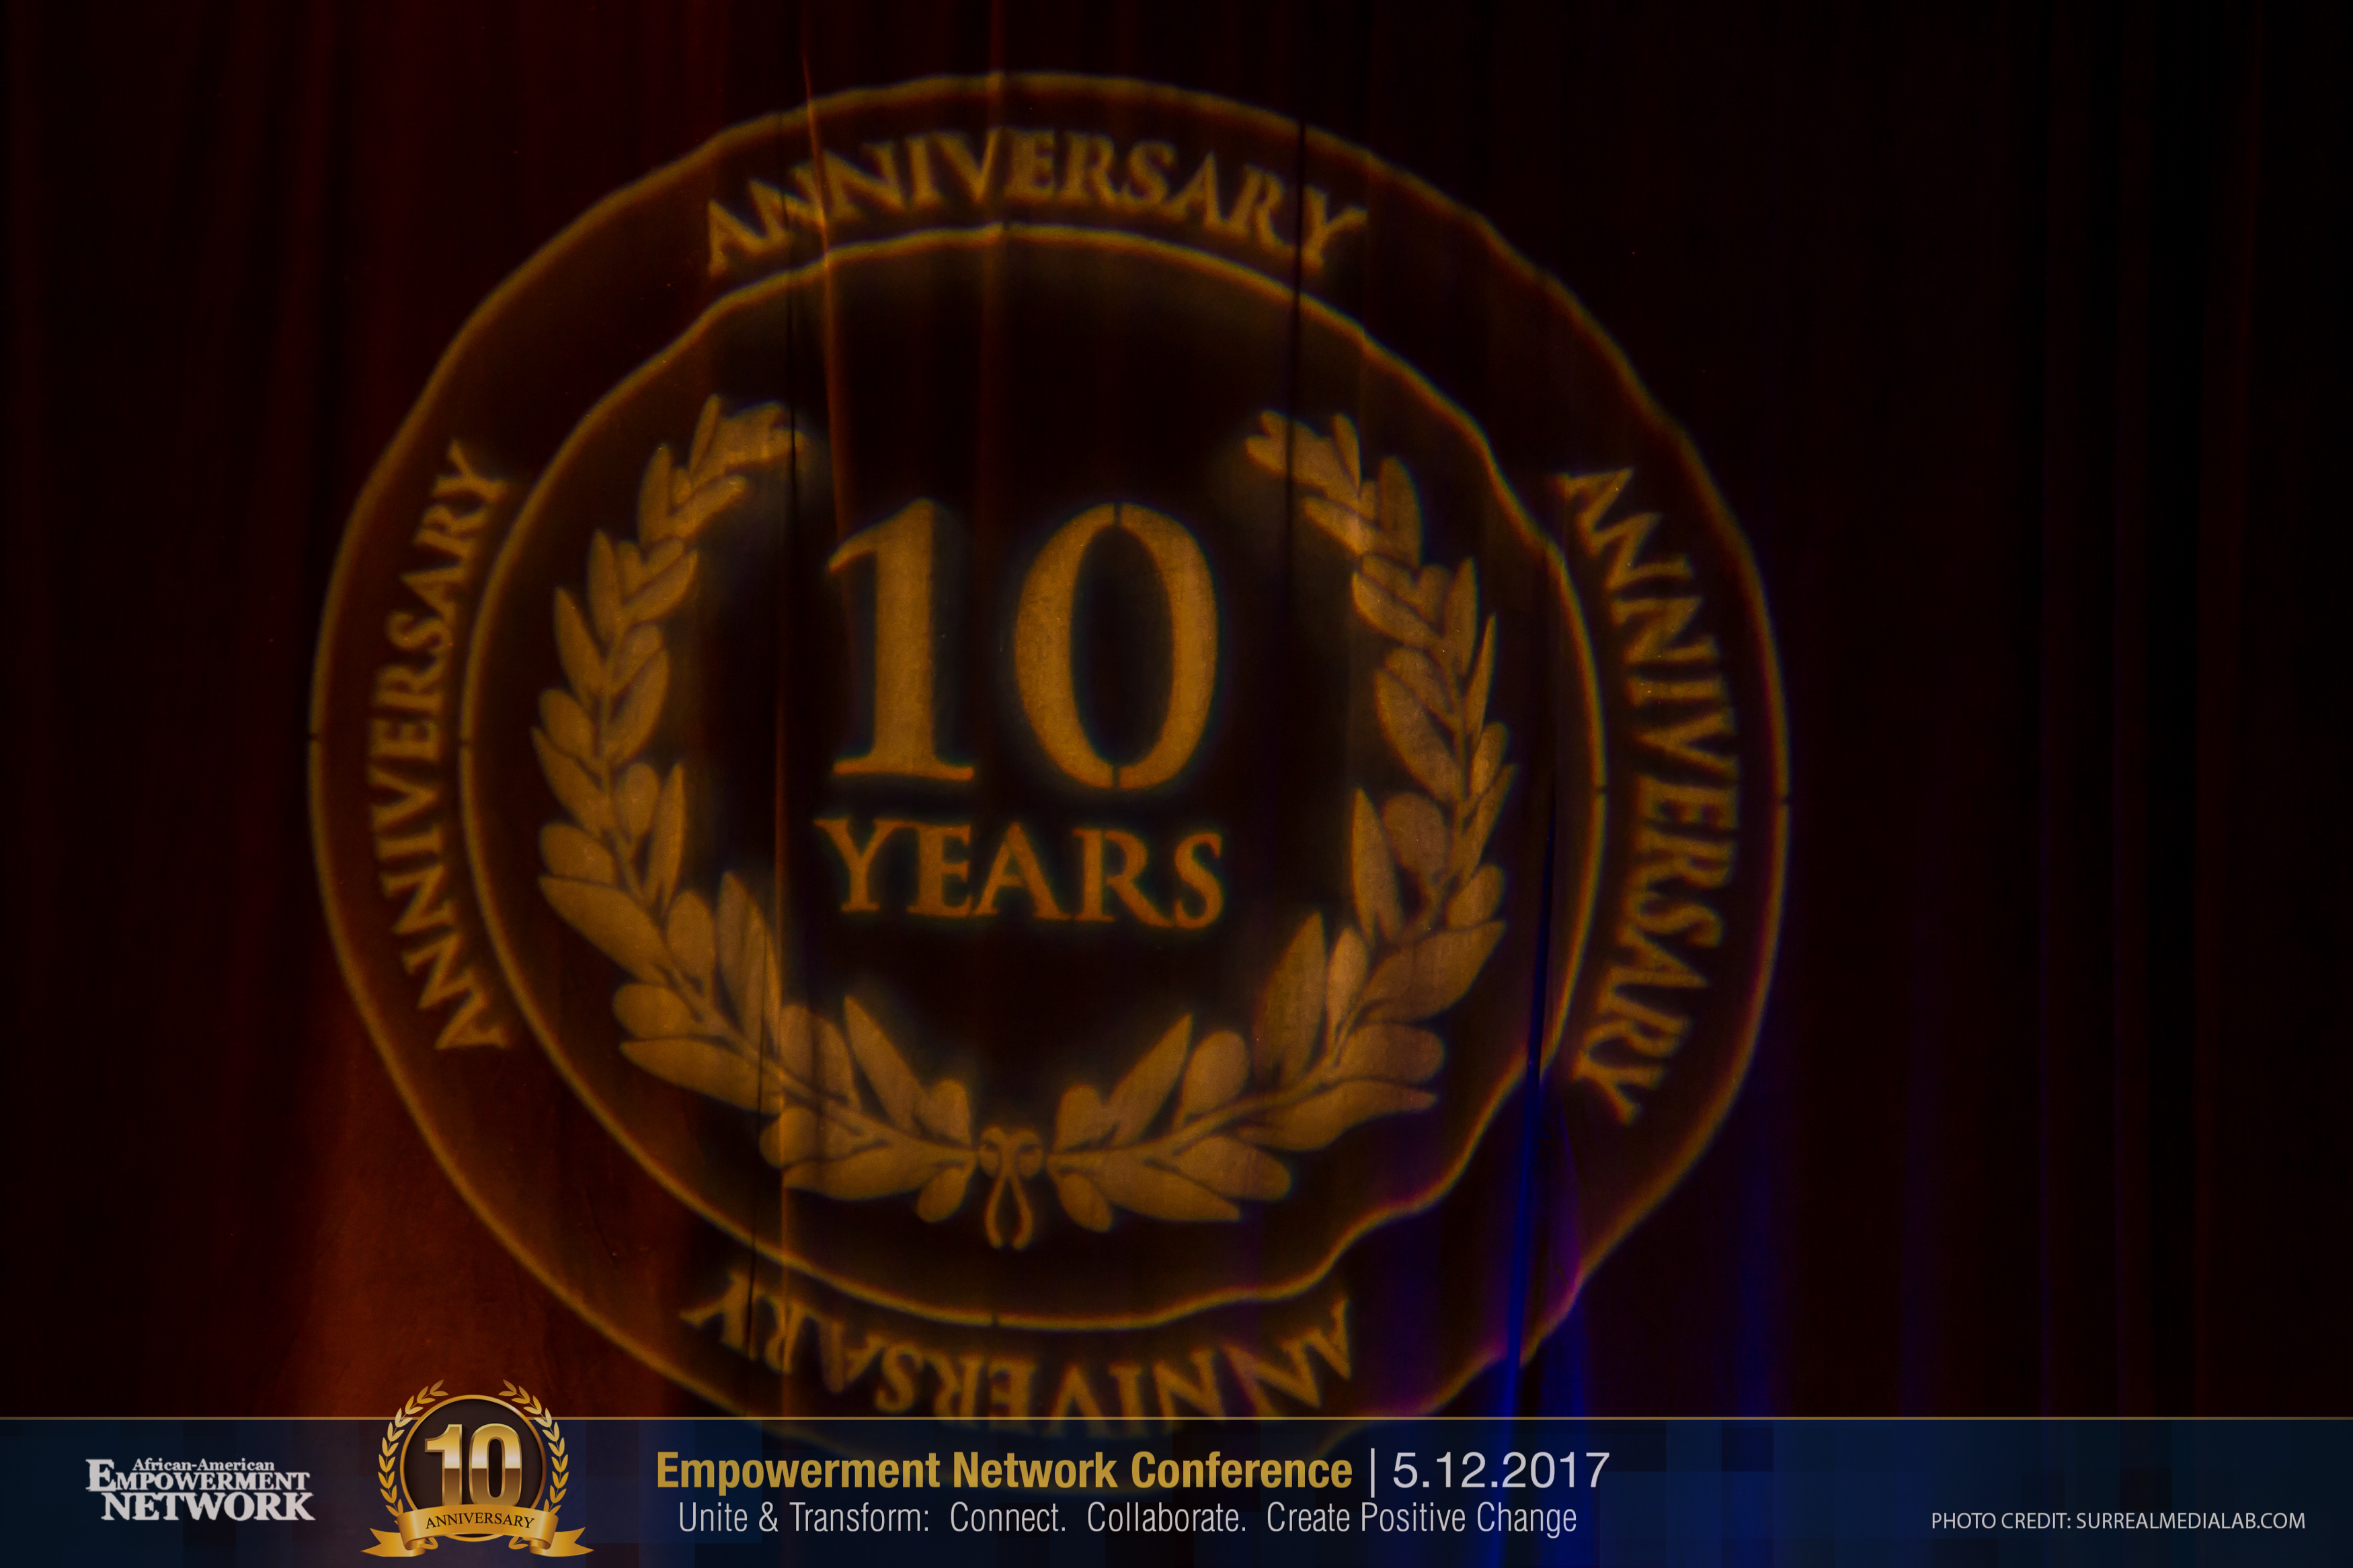 Honoring 10 years of Empowerment and the Next 10 Years Beyond